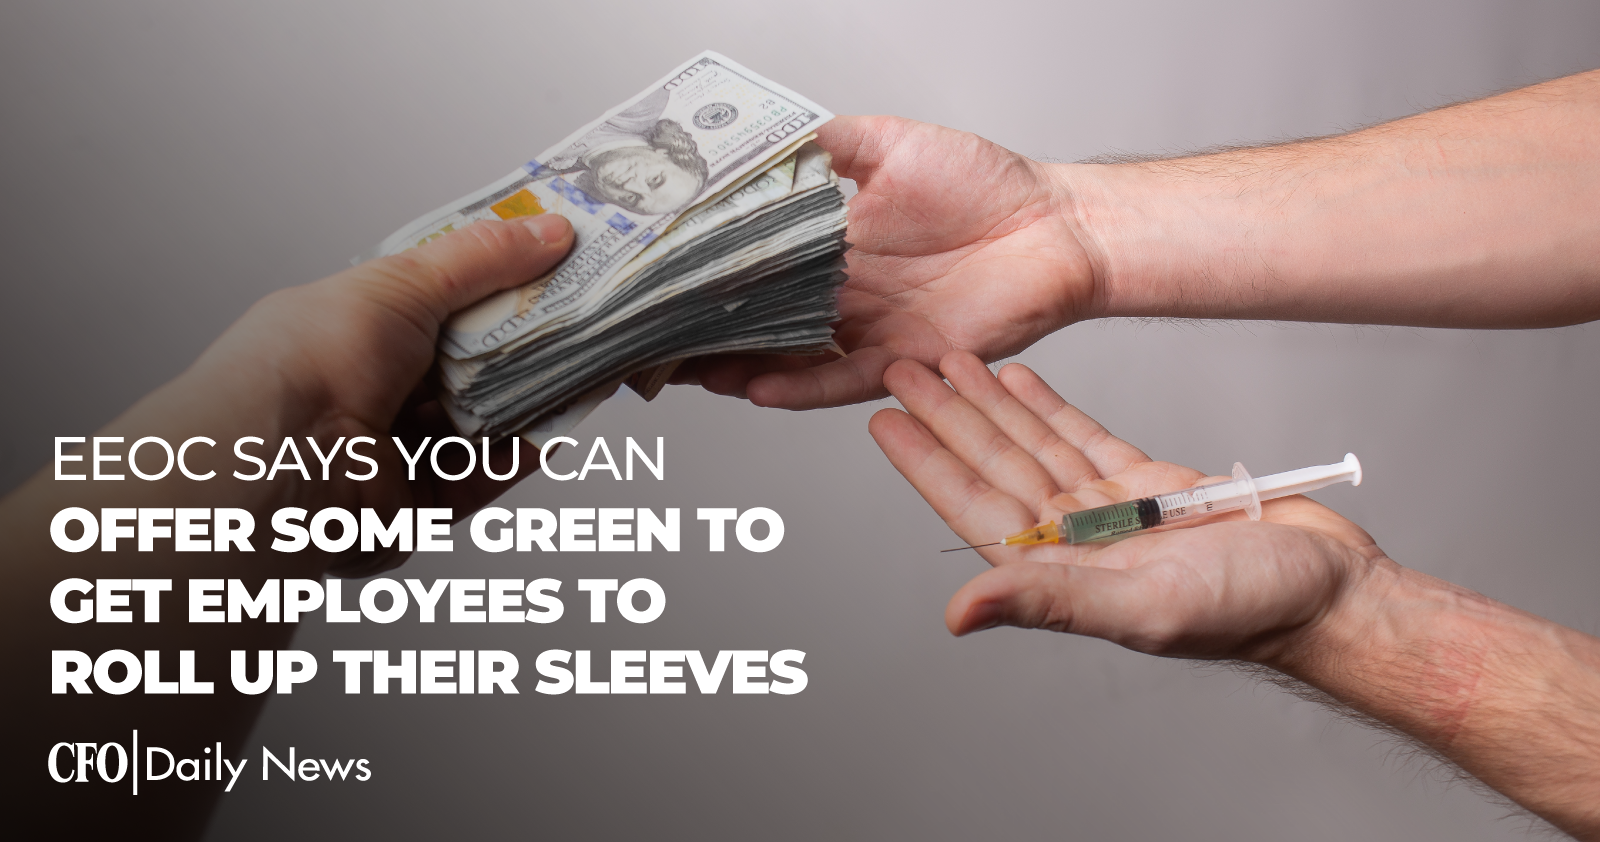 EEOC Says You Can Offer Some Green To Get Employees To Roll Up Their Sleeves